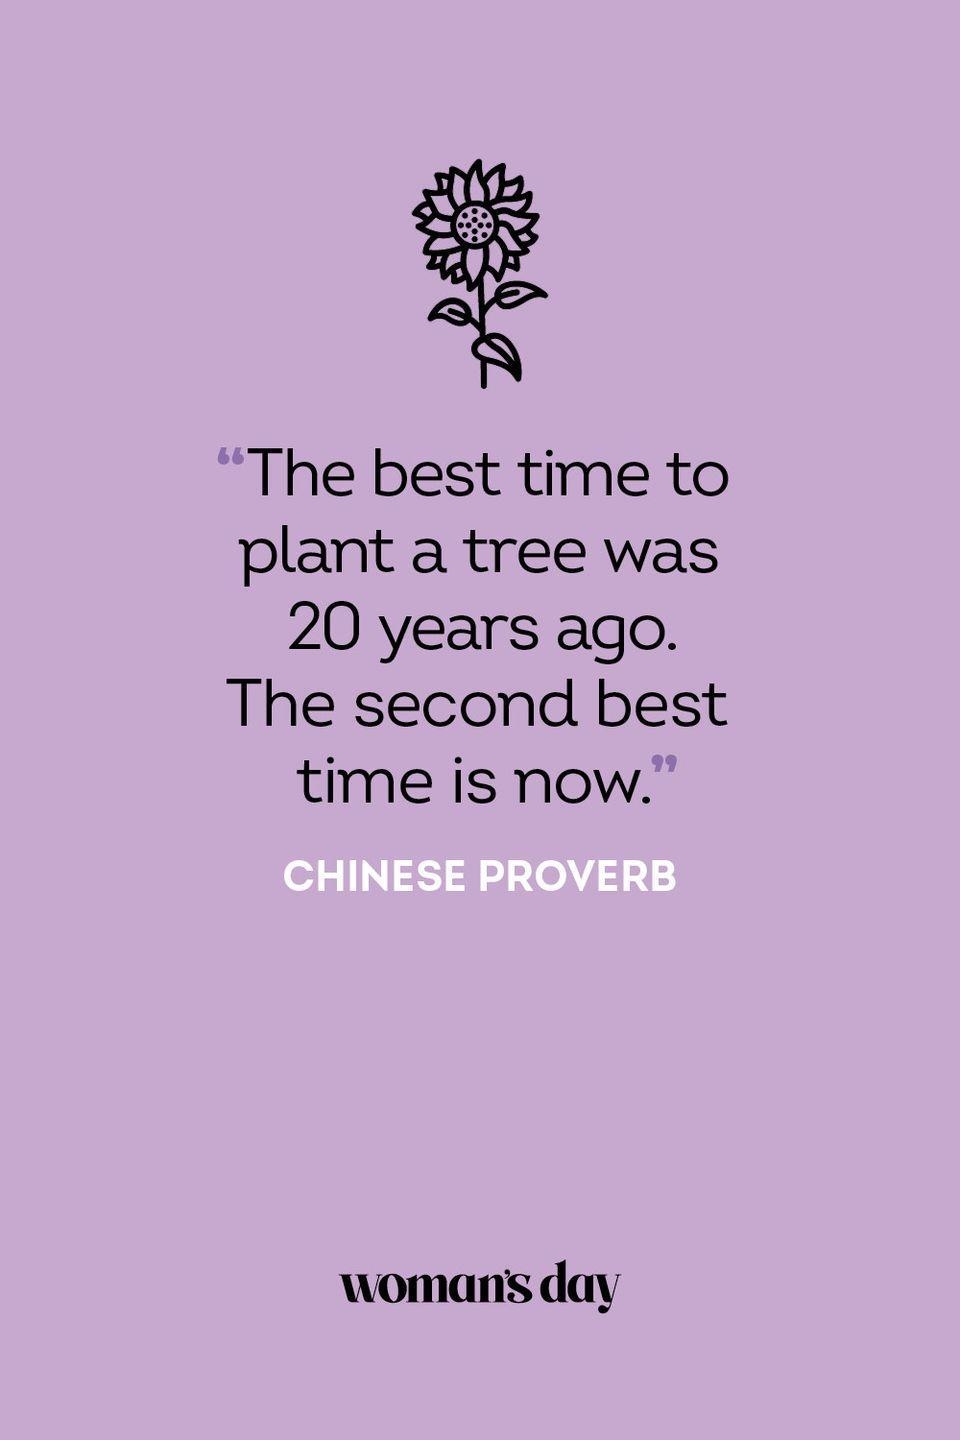 <p>The best time to plant a tree was 20 years ago. The second best time is now.</p>